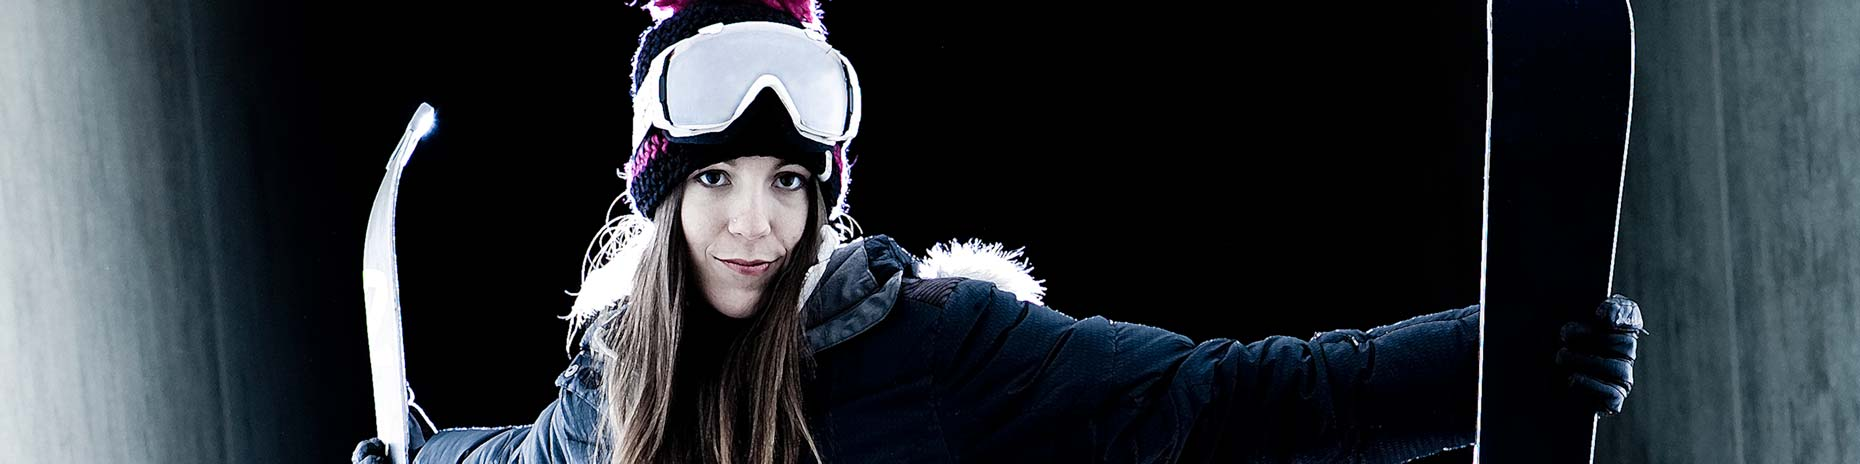 Tomas Zuccareno Photography | Female Skiier Portrait